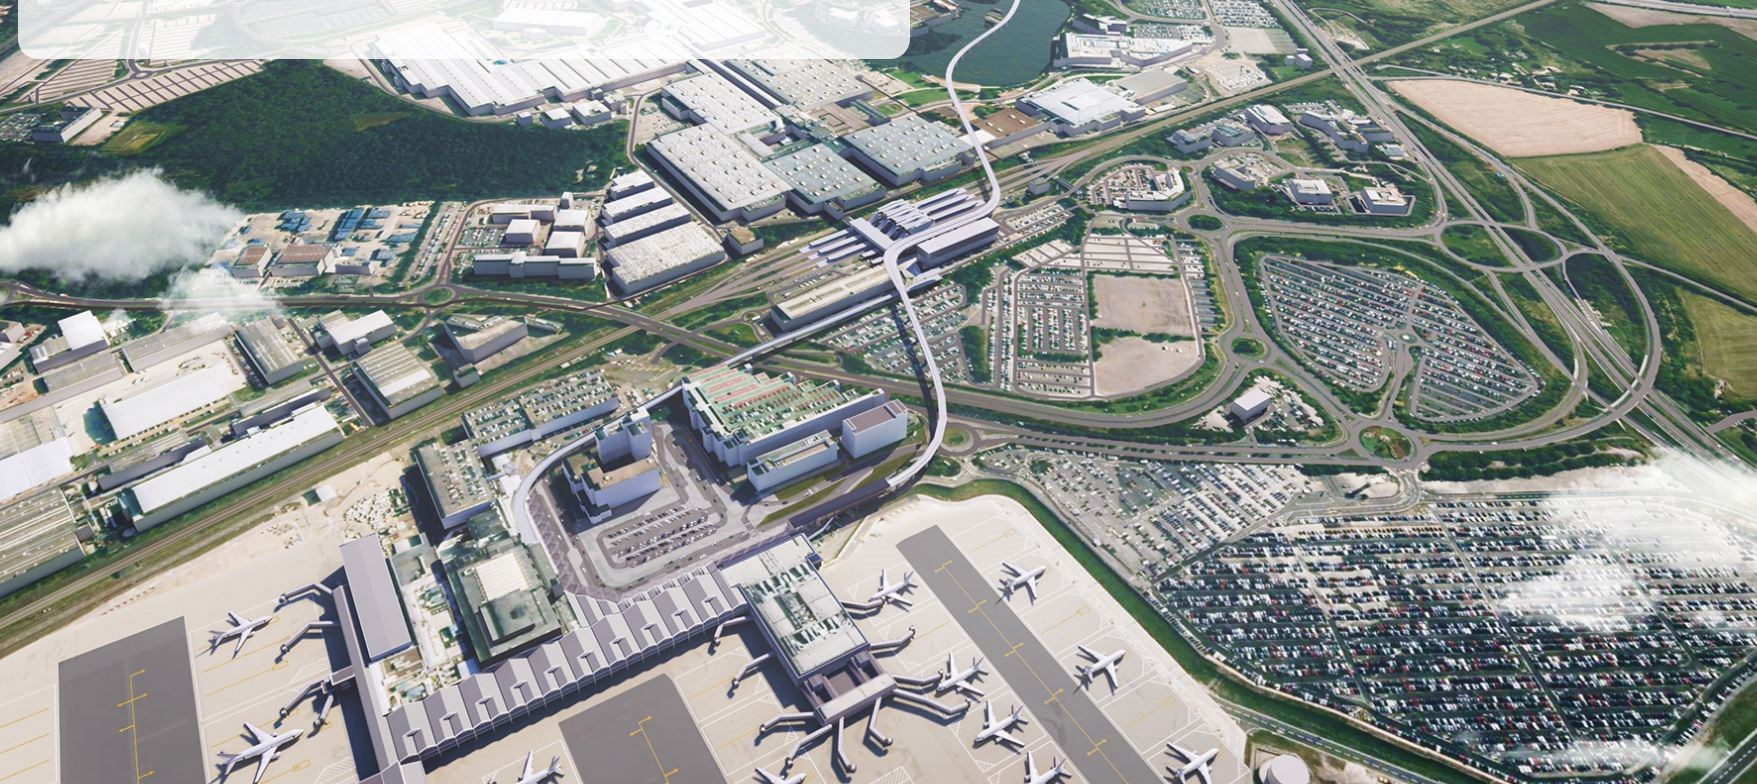 Birmingham Airport to invest £500 million to grow passengers to 18 million by 2033